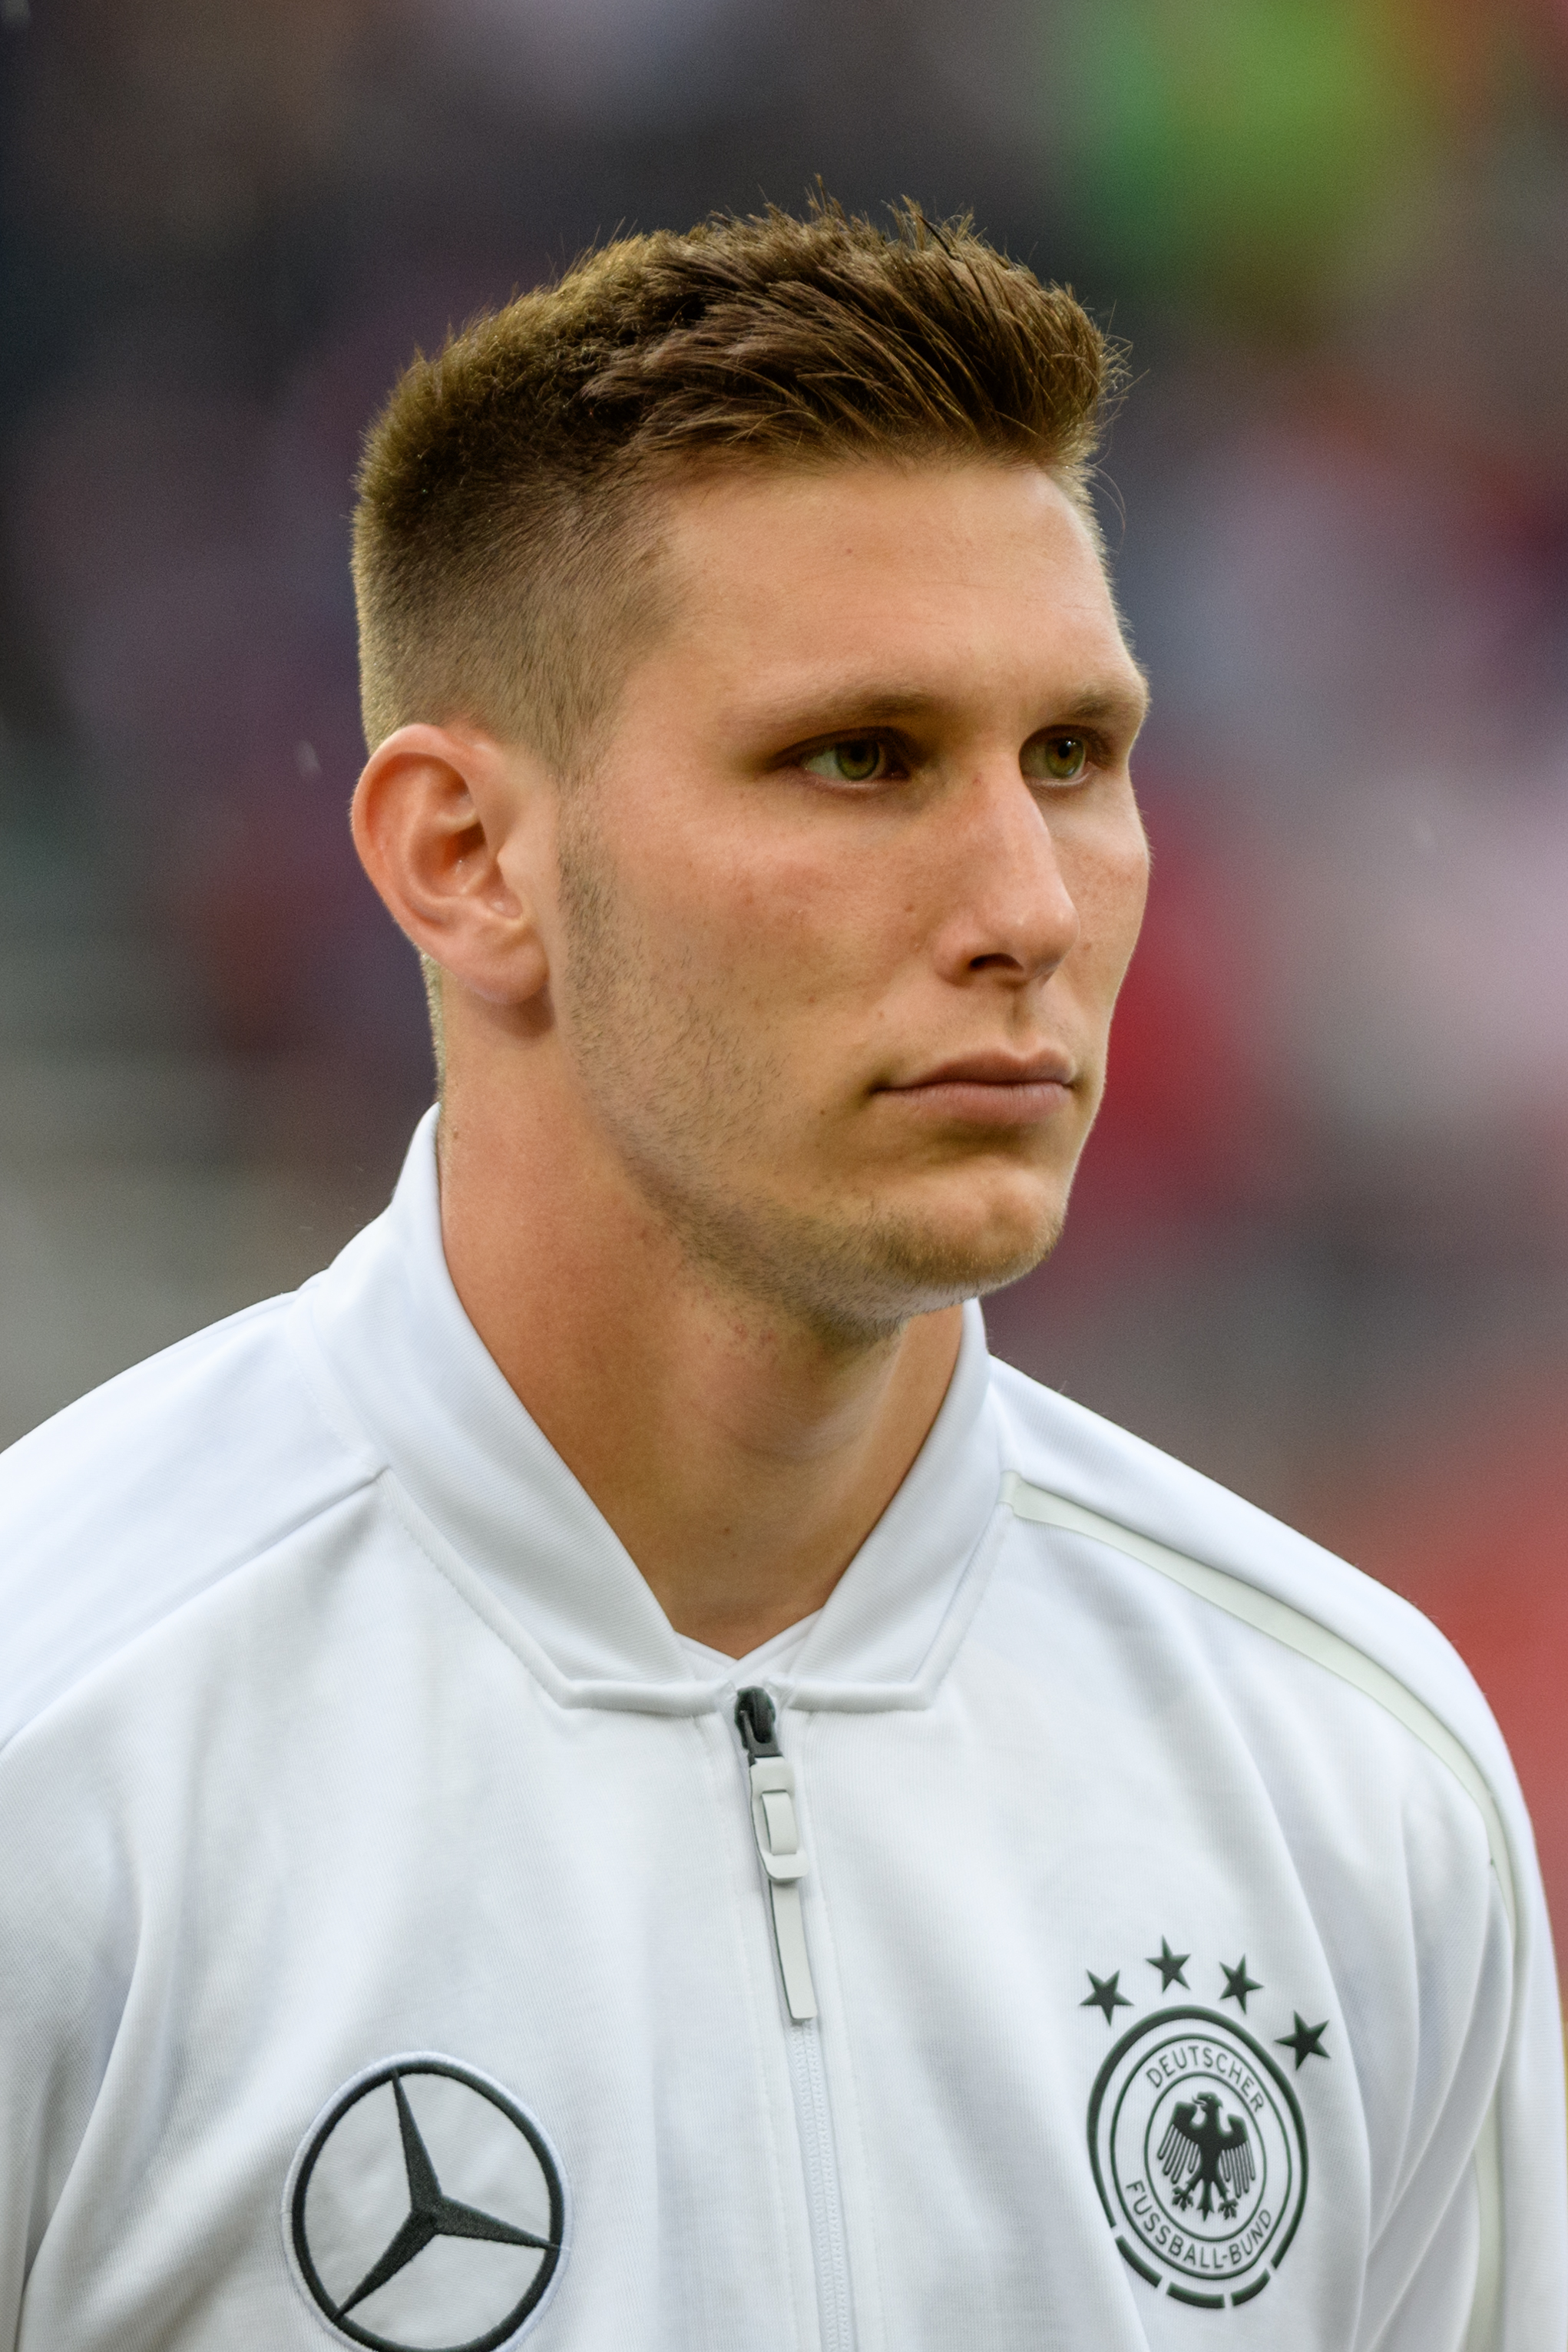 The 23-year old son of father Georg Süle and mother(?) Niklas Süle in 2018 photo. Niklas Süle earned a -1 million dollar salary - leaving the net worth at  million in 2018